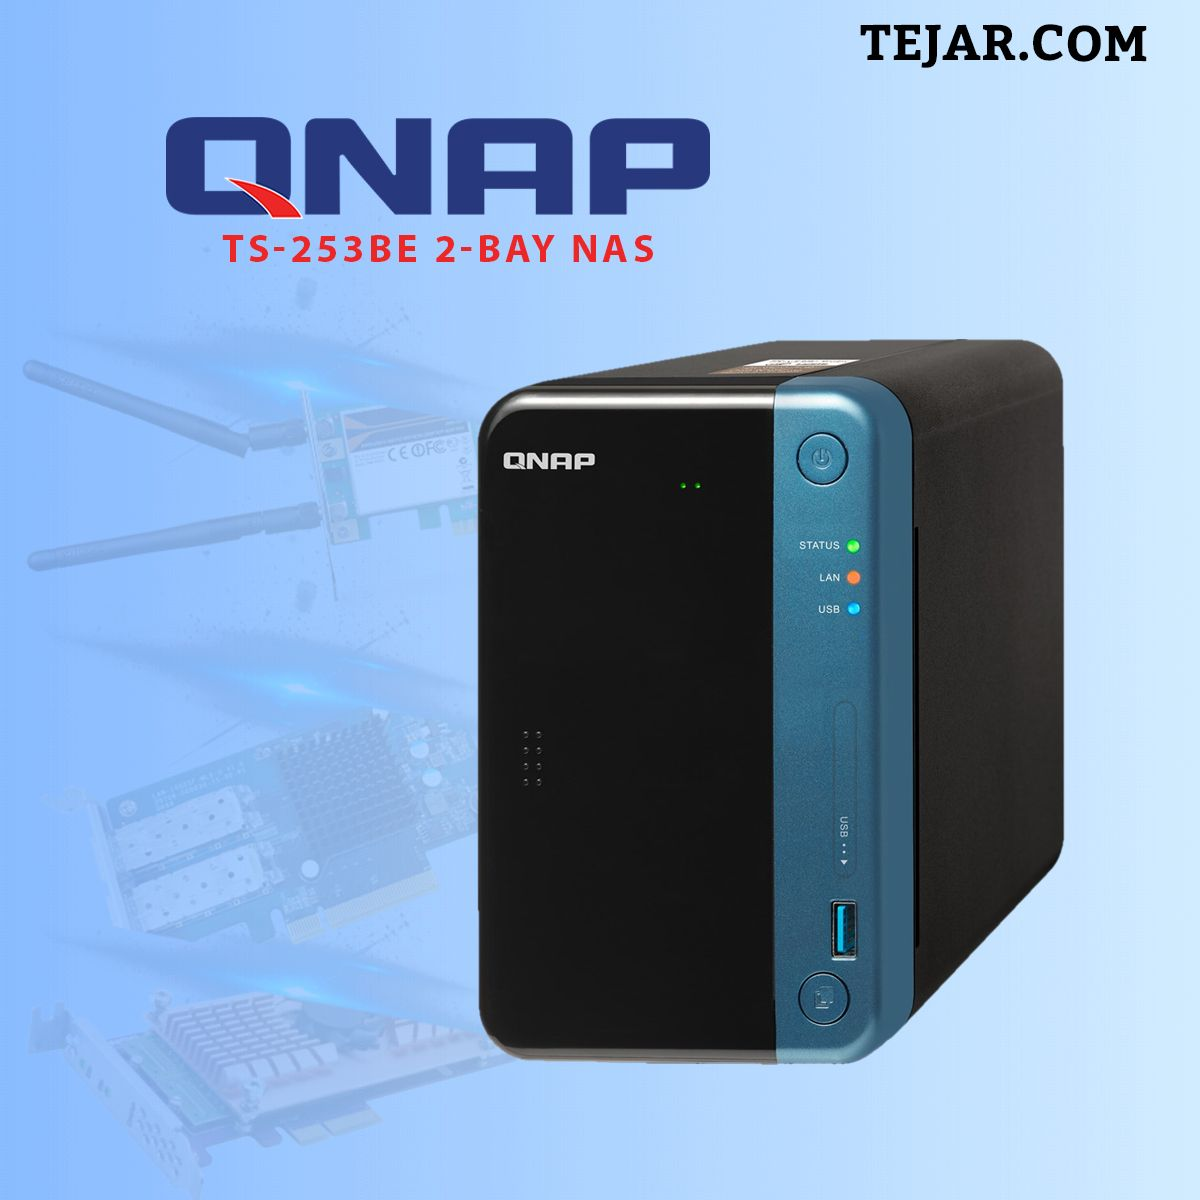 QNAP TS-253Be 2-Bay NAS | Electronics & Computers | Computer